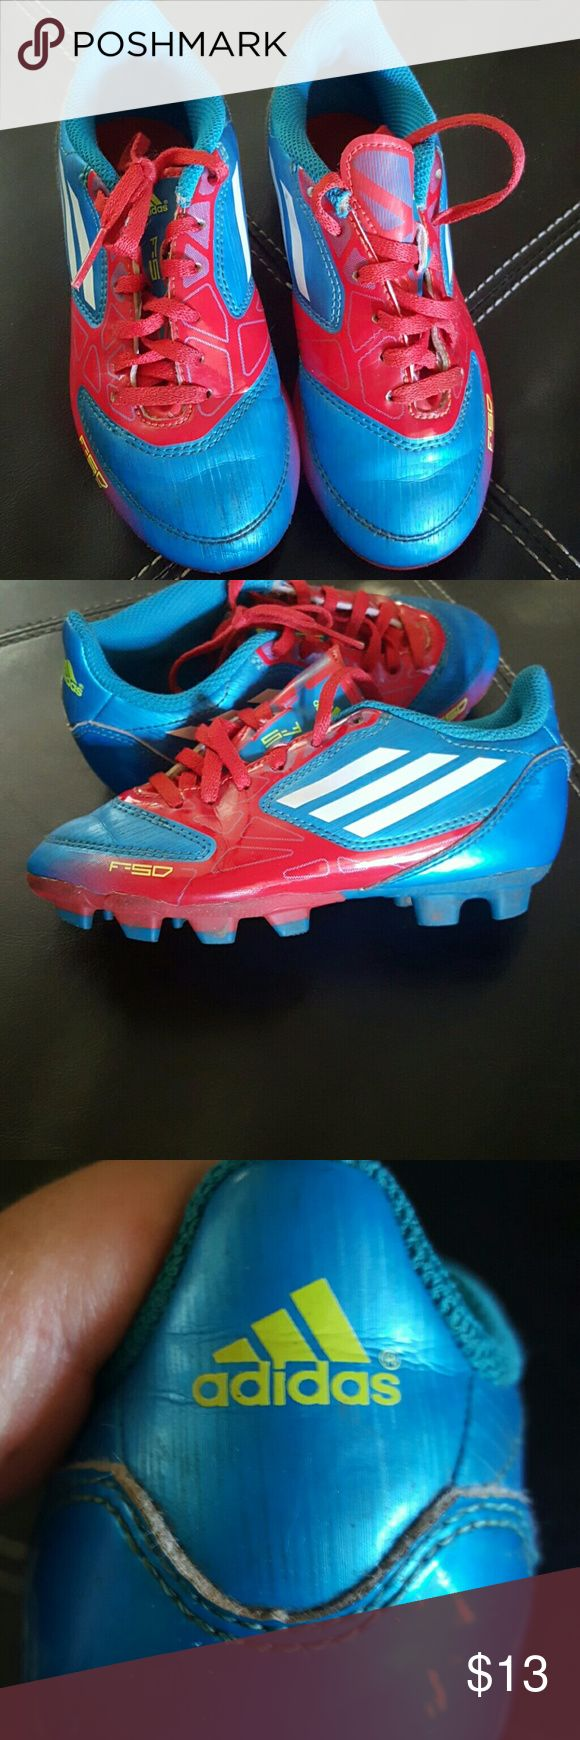 Size 12 Kids cleats Adadis. Red, White, Blue Good condition kids childrens Cleats size 12 kids. GREAT FOR Boys or Girls. Soccer. F-50 Adidas Shoes Sneakers